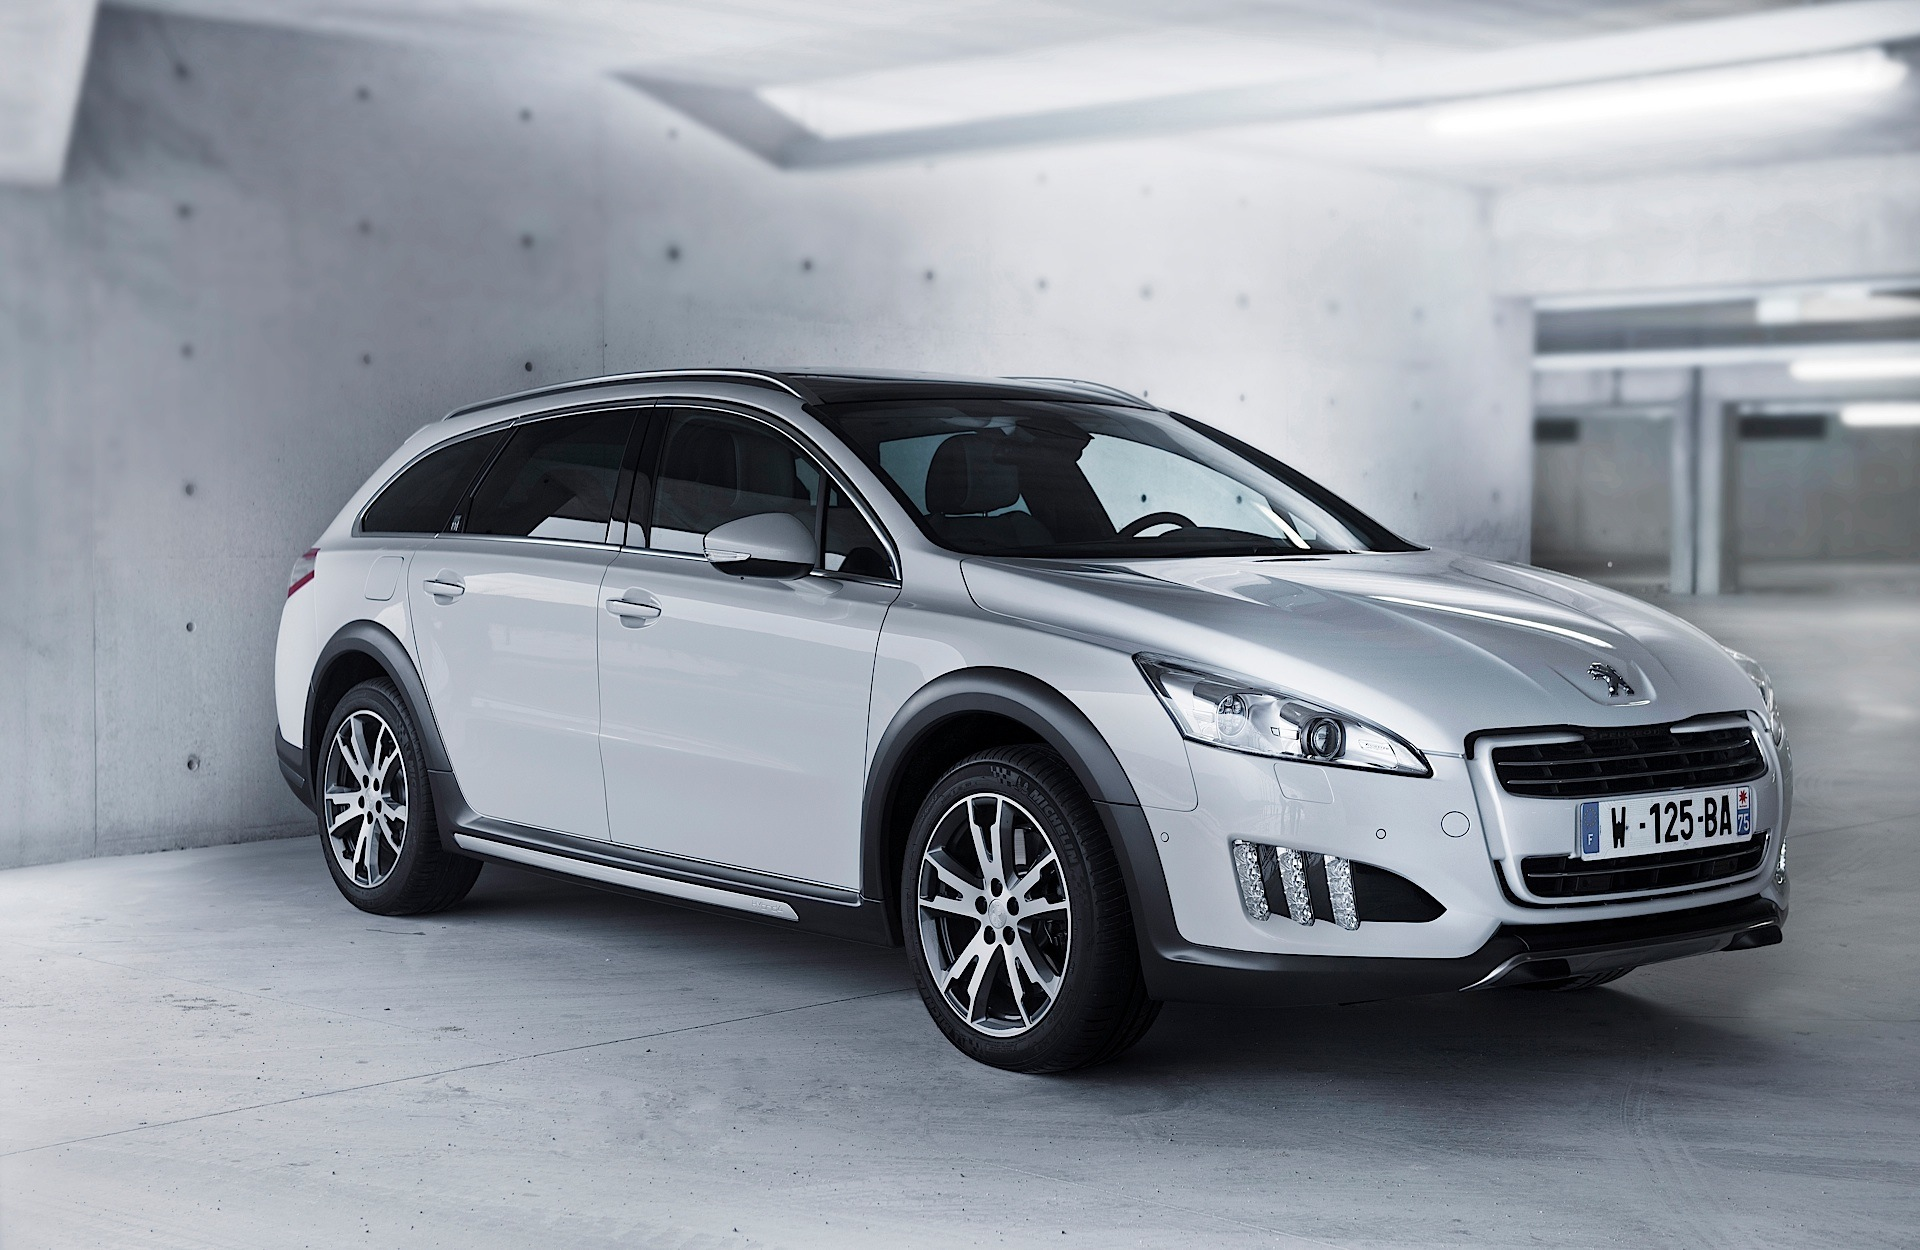 peugeot peugeot 508 rxh specs 2011 2012 2013 2014 autoevolution. Black Bedroom Furniture Sets. Home Design Ideas